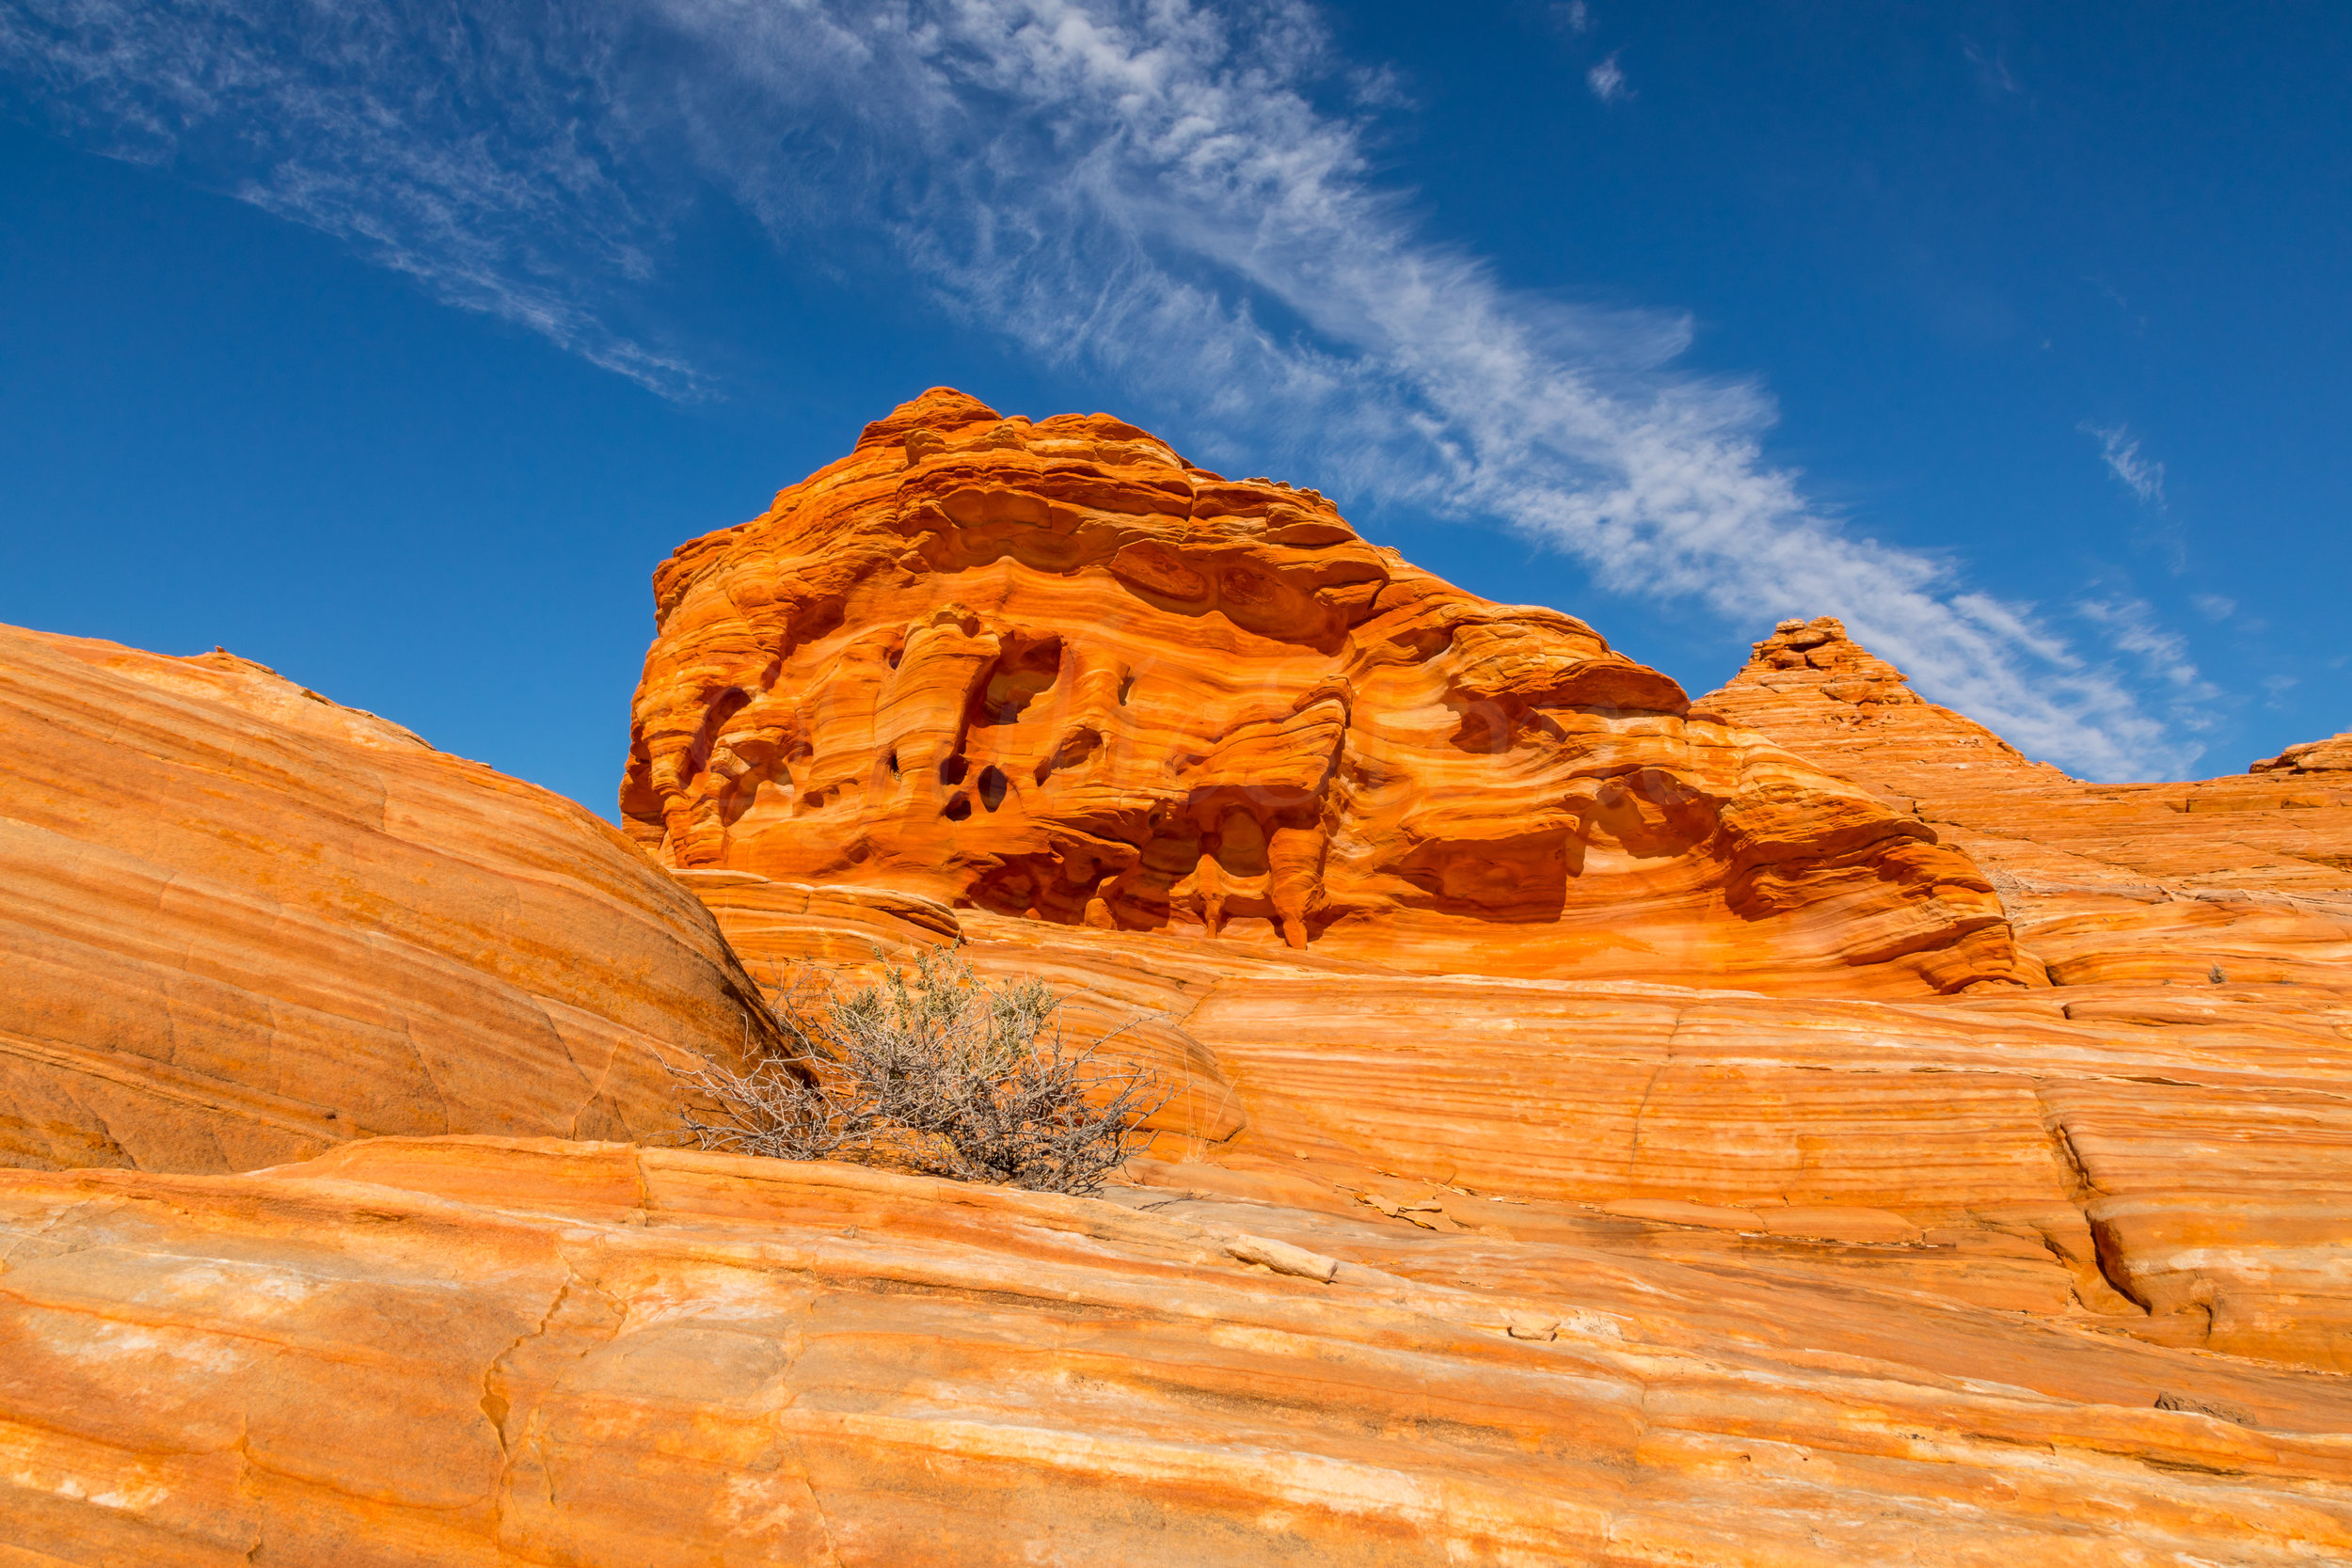 Valley of Fire, Image # 3212